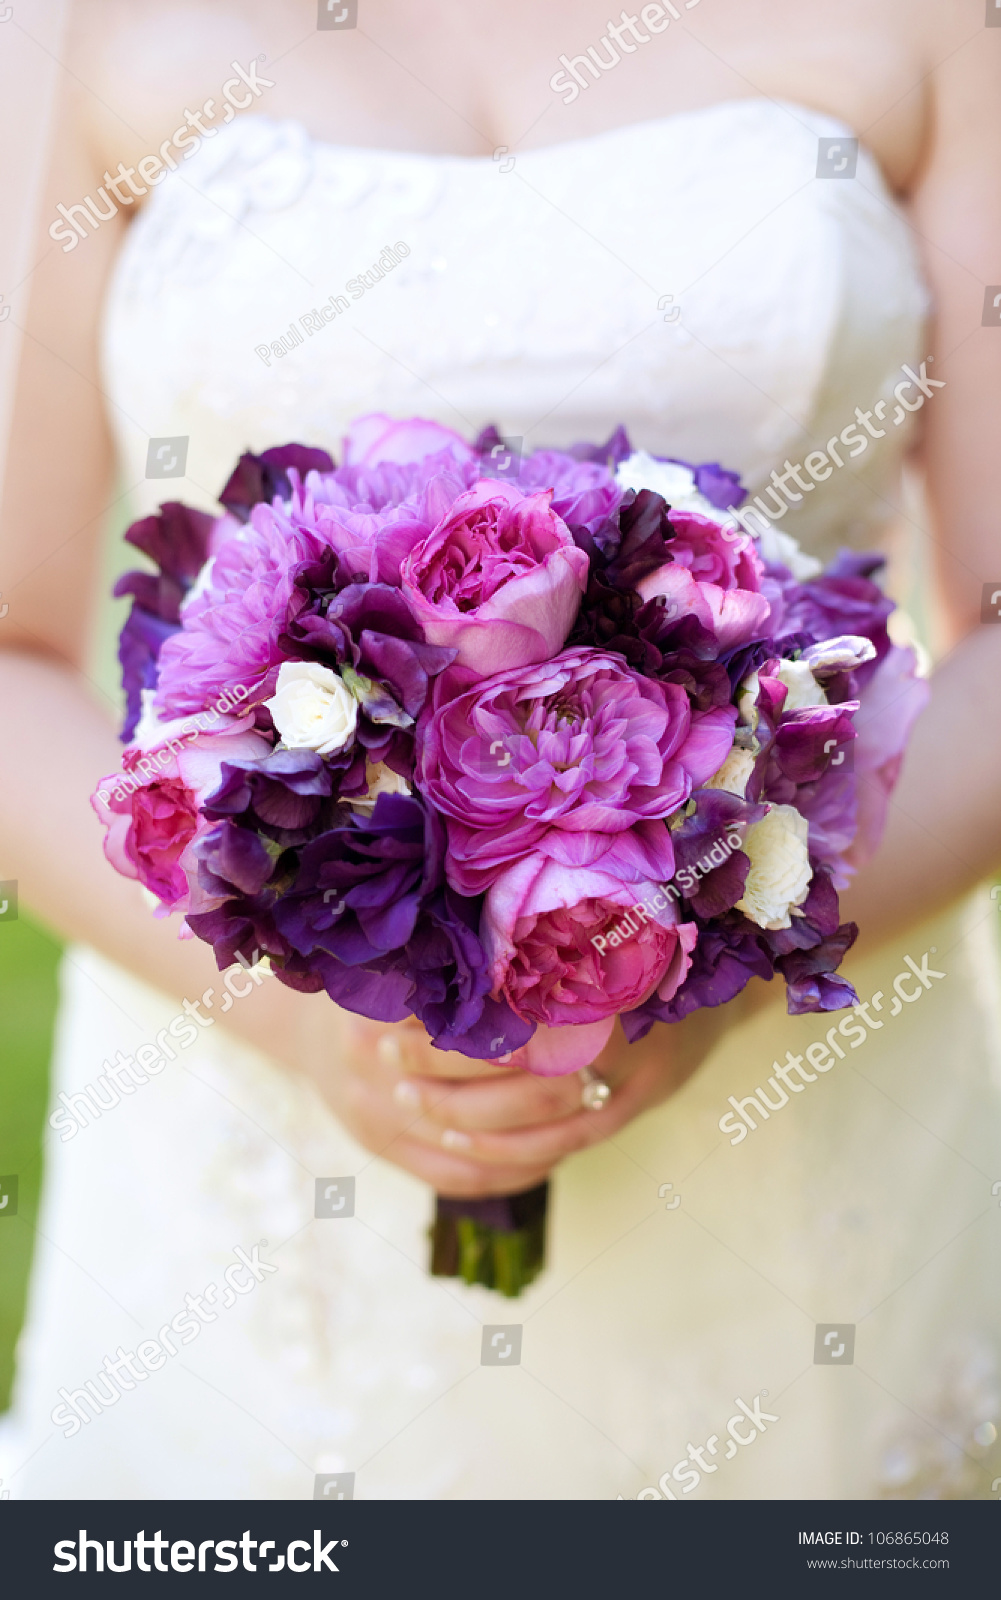 Wedding Bouquet Pink Purple Flowers Stock Photo Edit Now 106865048